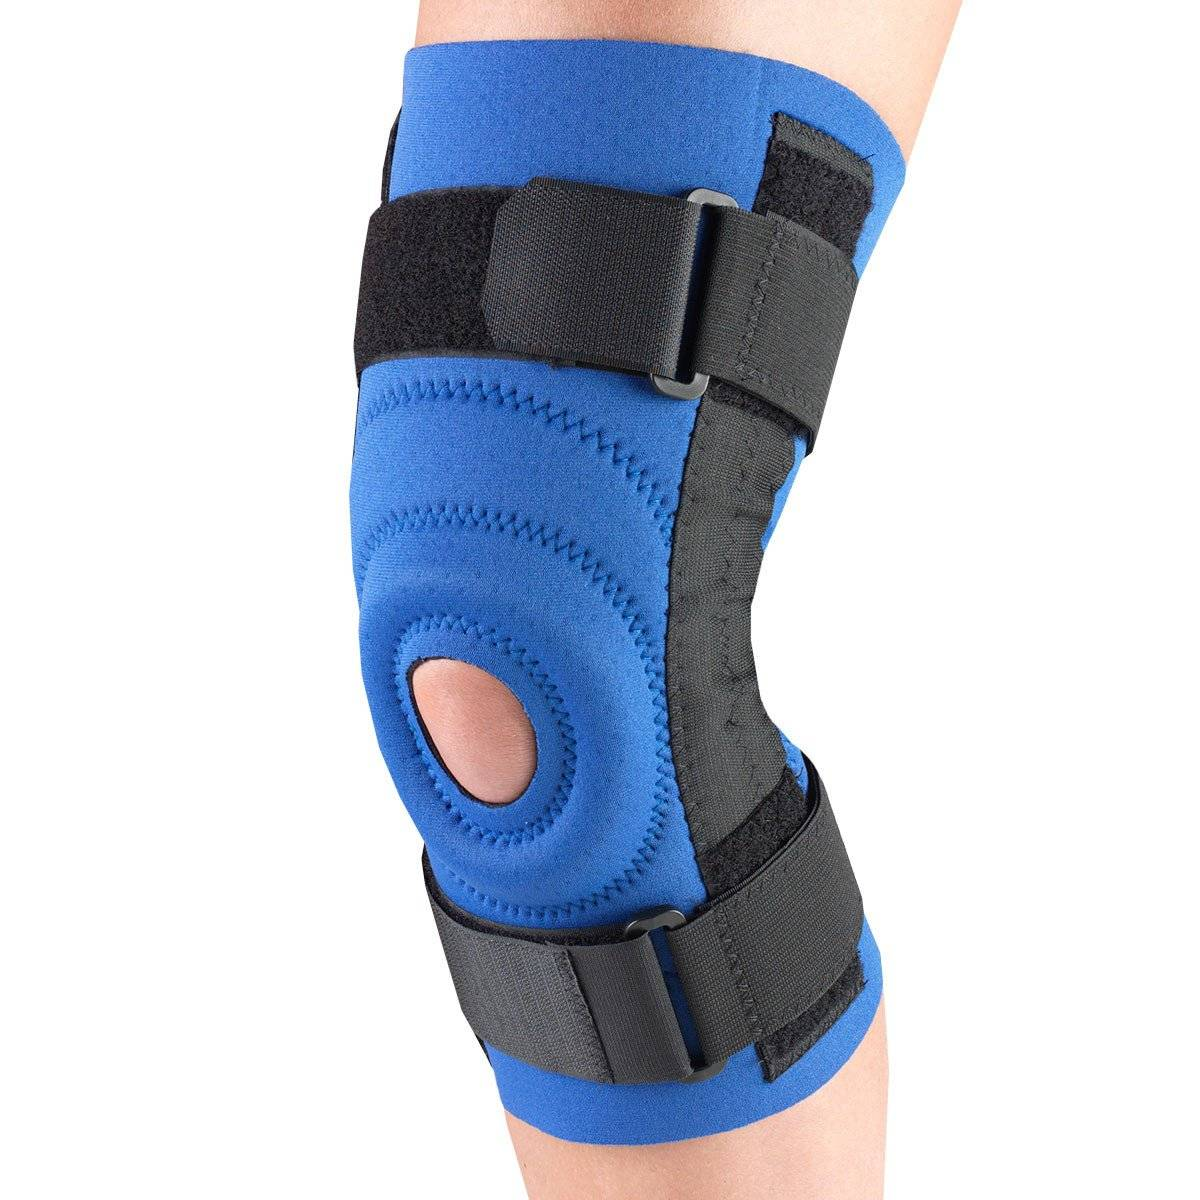 0308 / NEOPRENE KNEE STABILIZER - SPIRAL STAYS